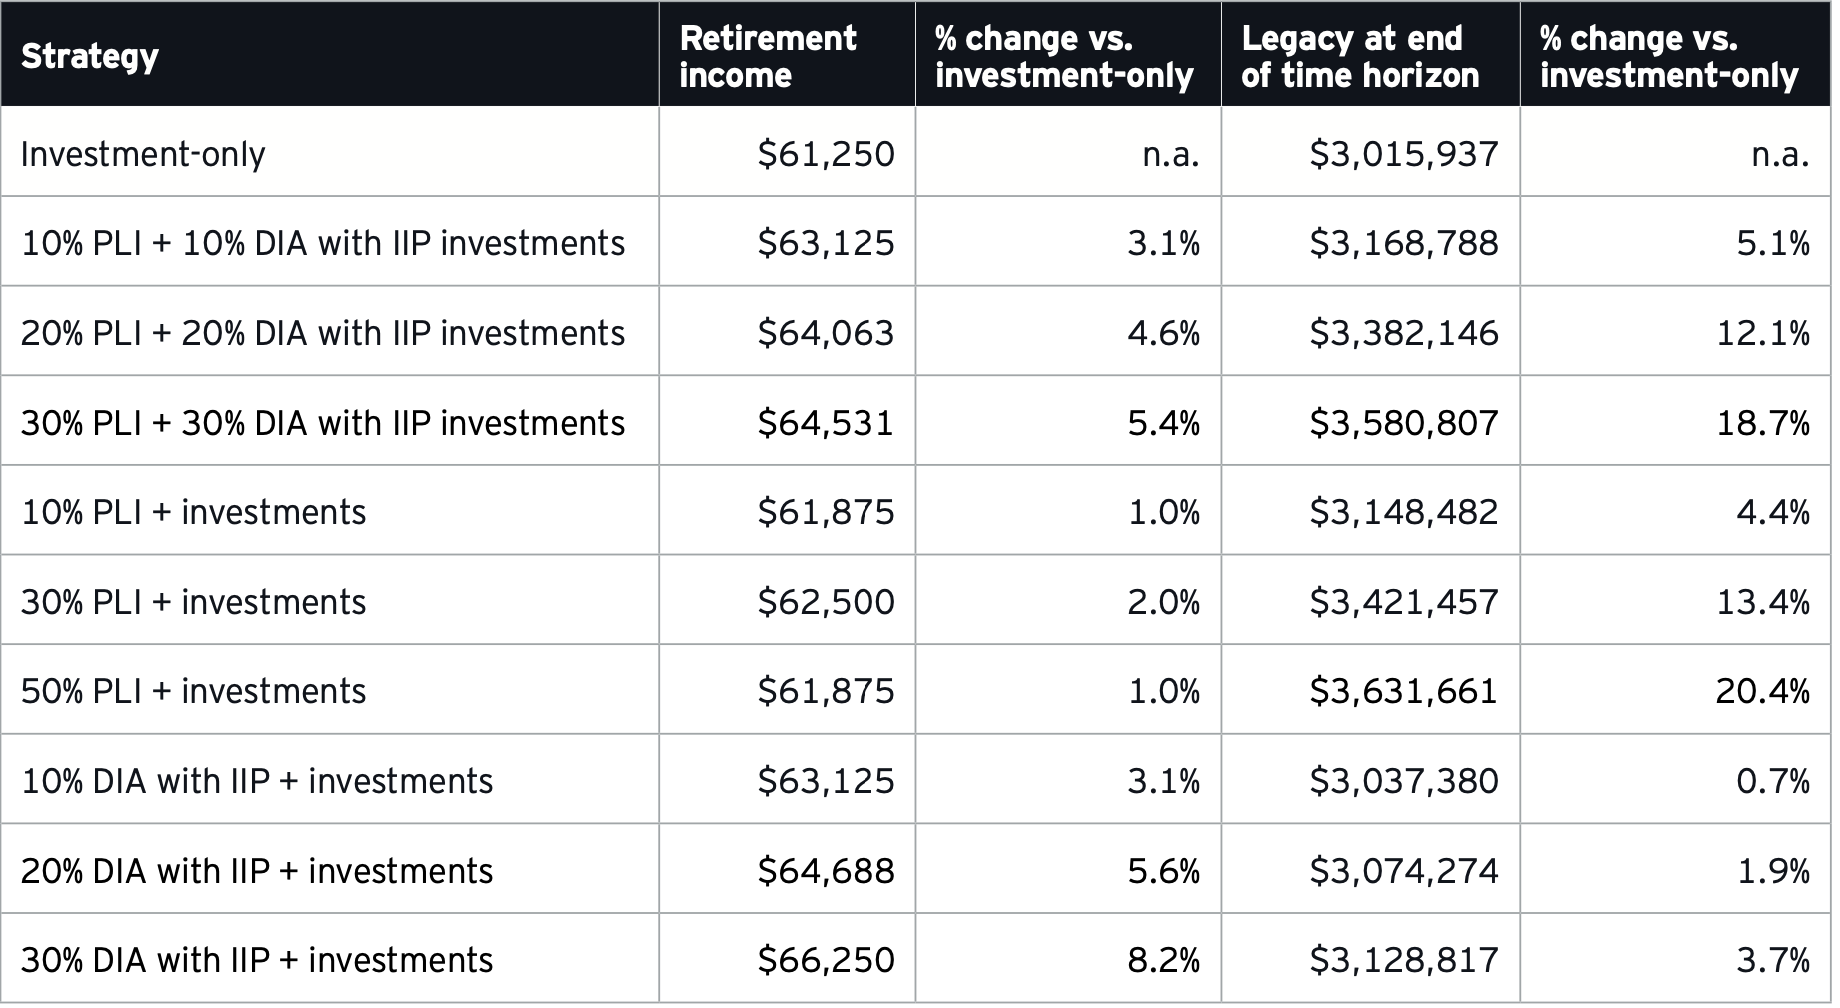 Whole Life Insurance and Annuities Impact on Retirement Income Ernst and Young